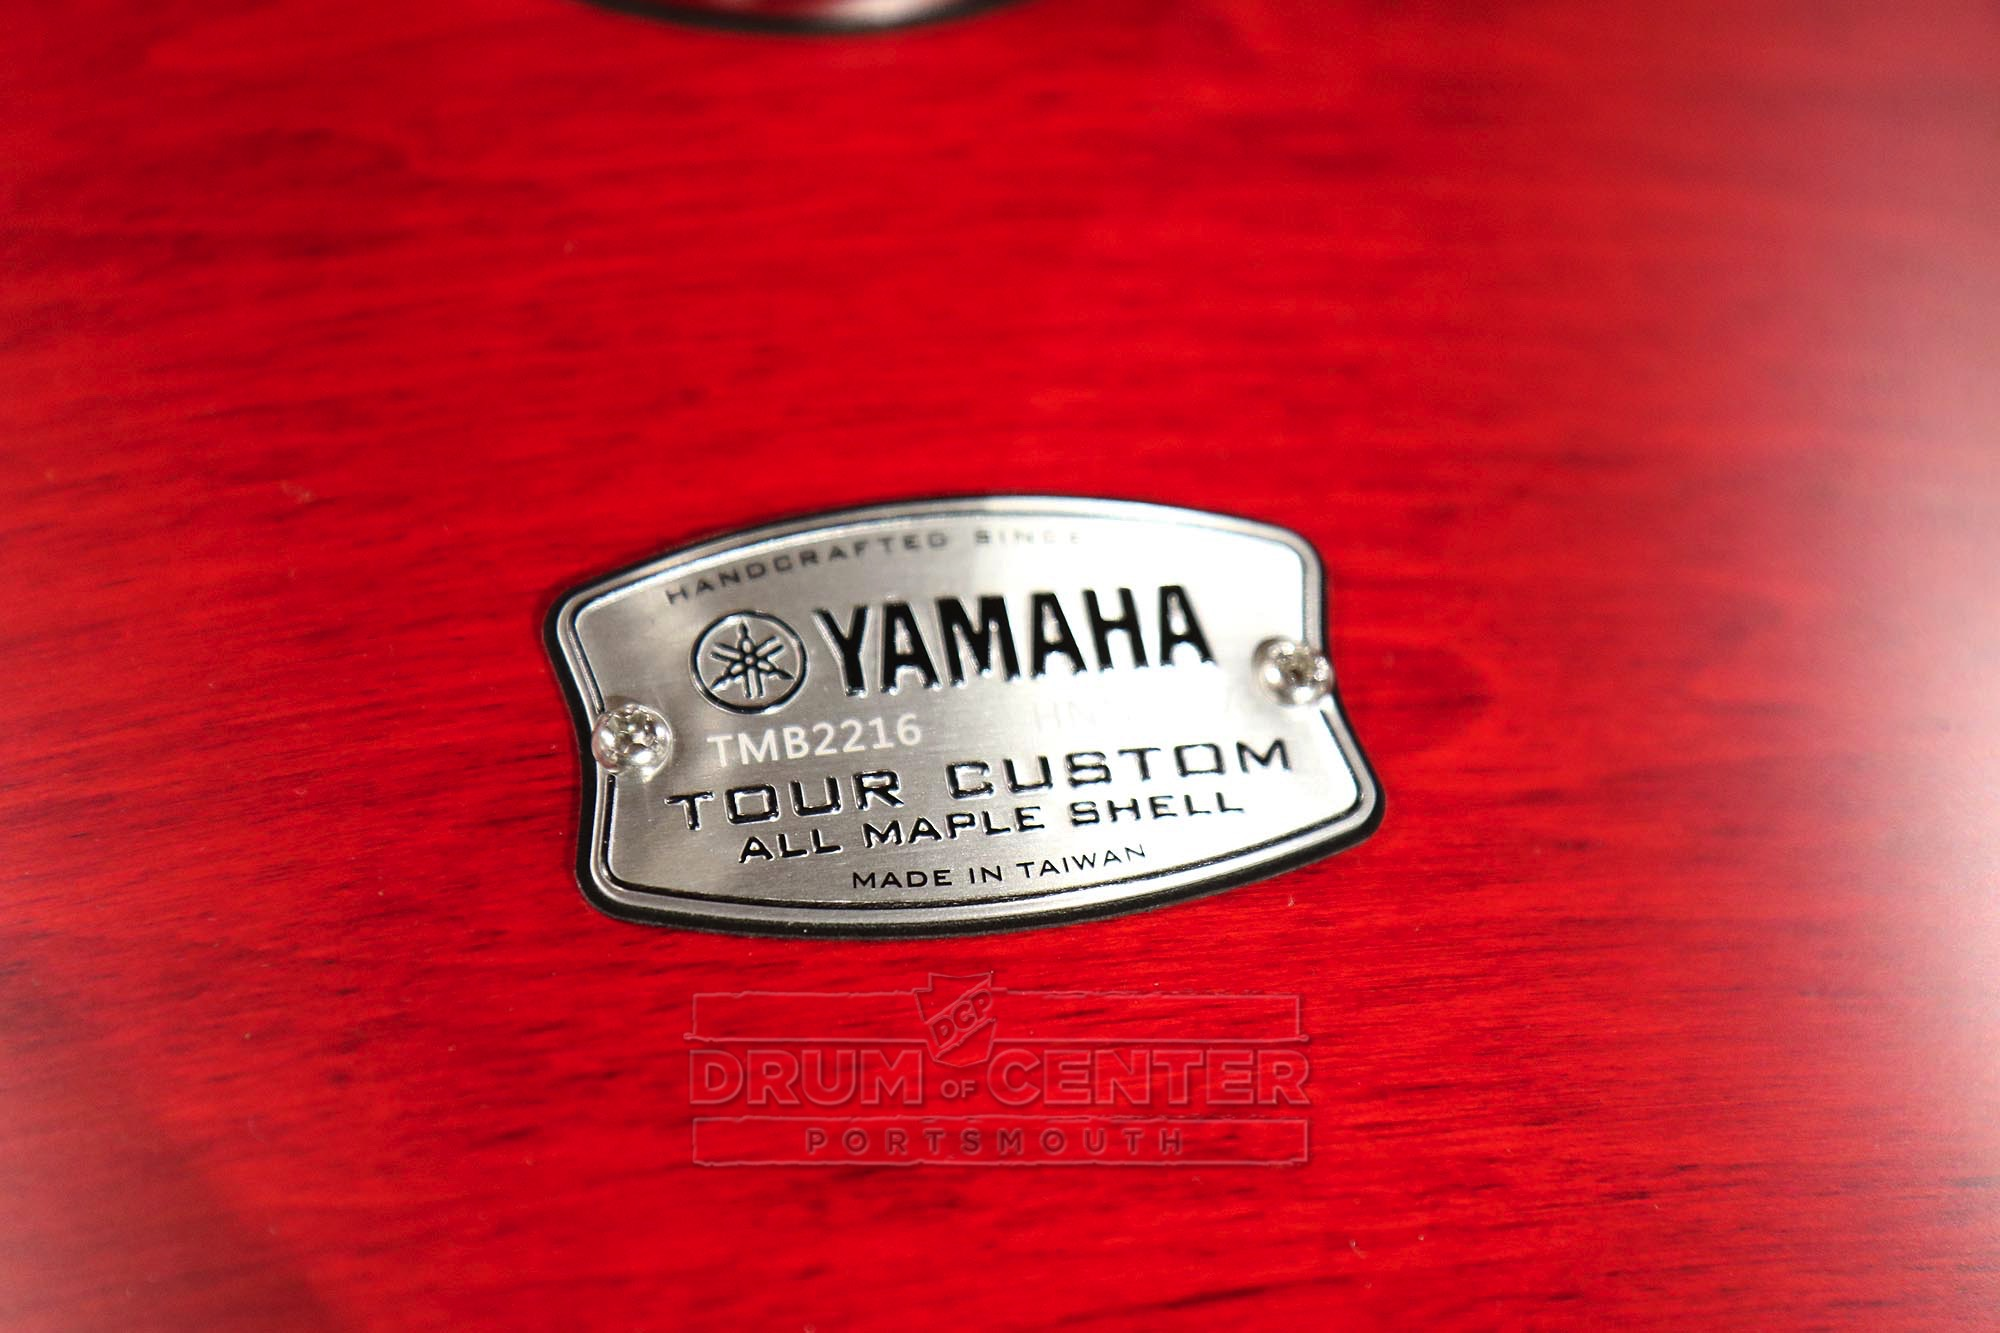 Yamaha Tour Custom Maple 4pc Drum Set 22 10 12 16 Candy Apple Satin Iphone 6 Mplw Hybrid Film Inspired By Award Winning Absolute And Drums Fuses Decades Of Being The Most In Demand Touring Studio